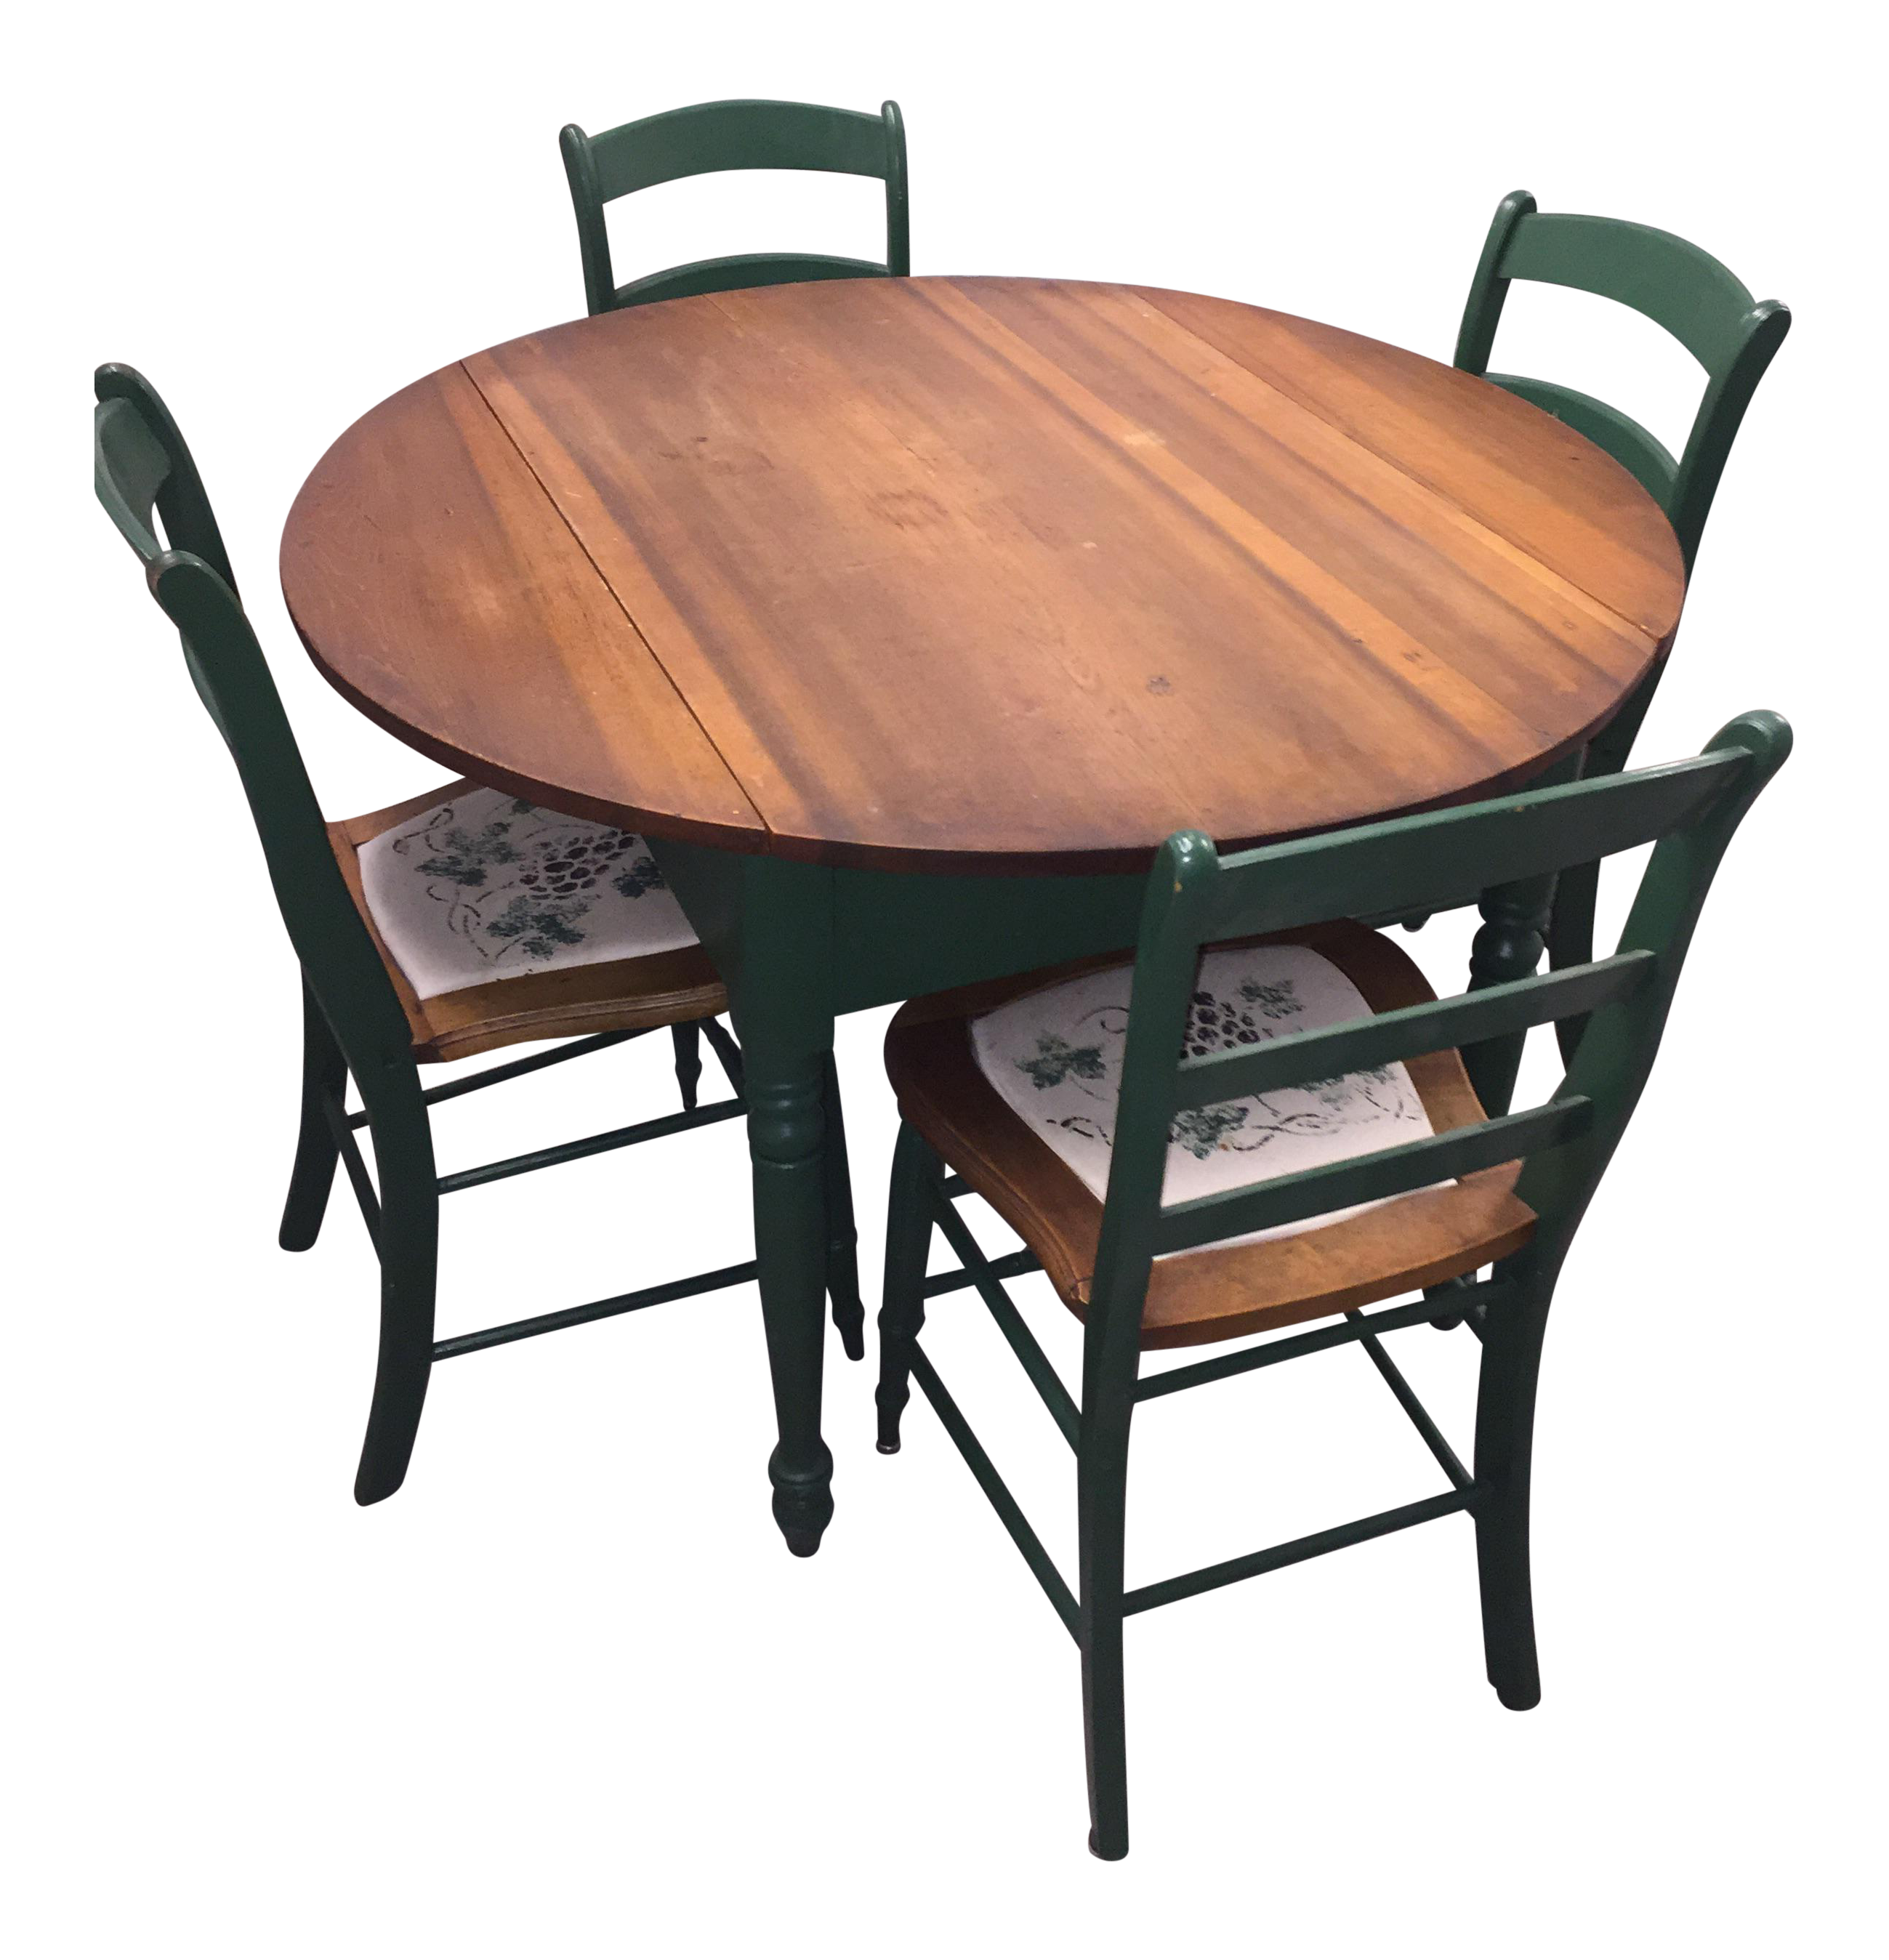 Antique Kitchen Table With Hand Painted Chairs   Set Of 5 Part 92